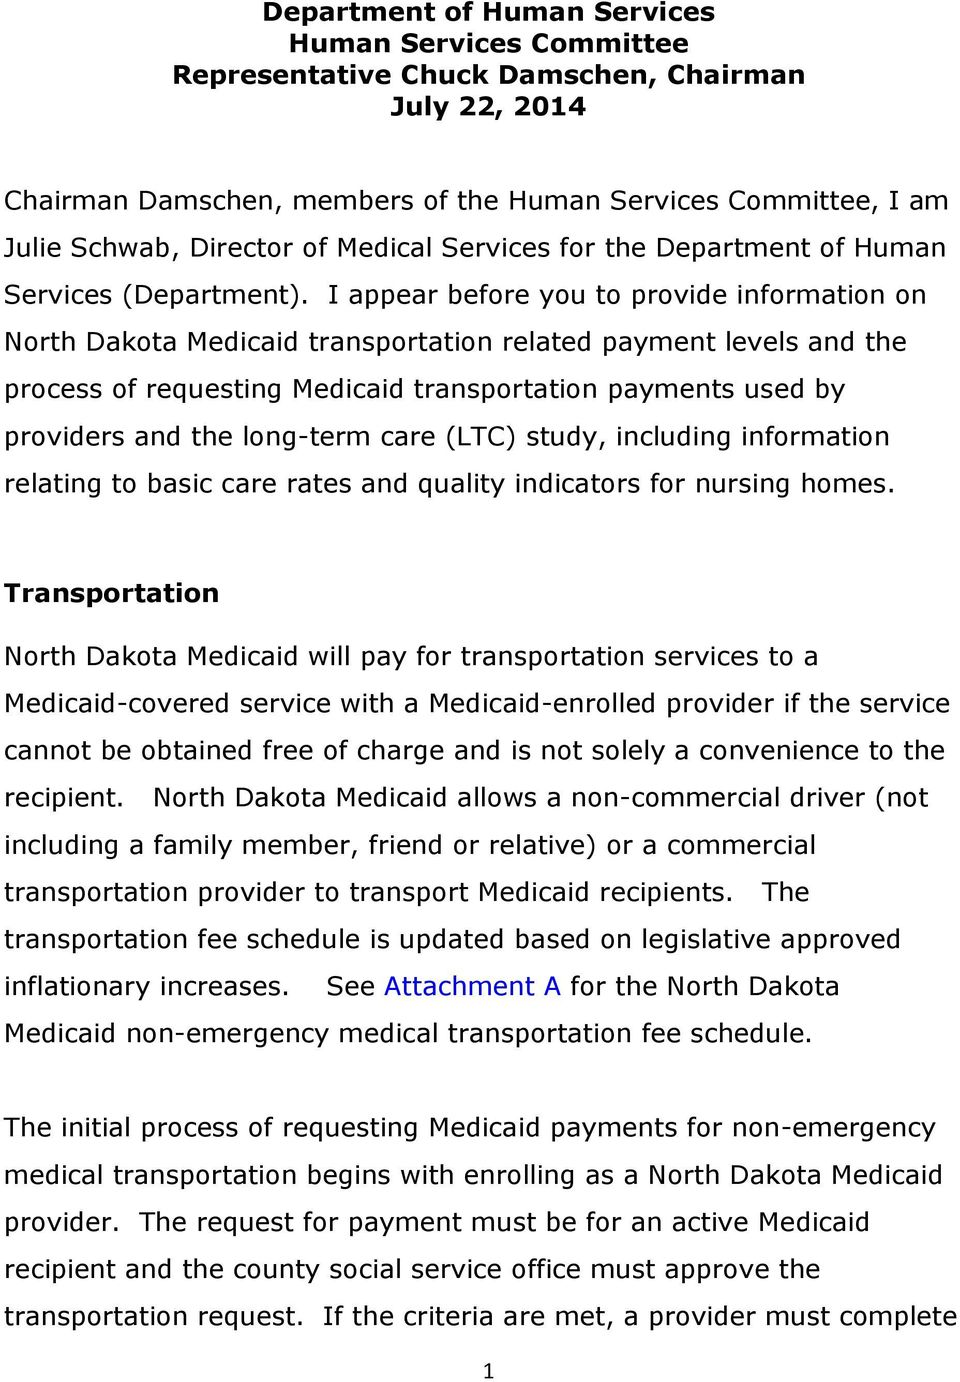 I appear before you to provide information on North Dakota Medicaid transportation related payment levels and the process of requesting Medicaid transportation payments used by providers and the